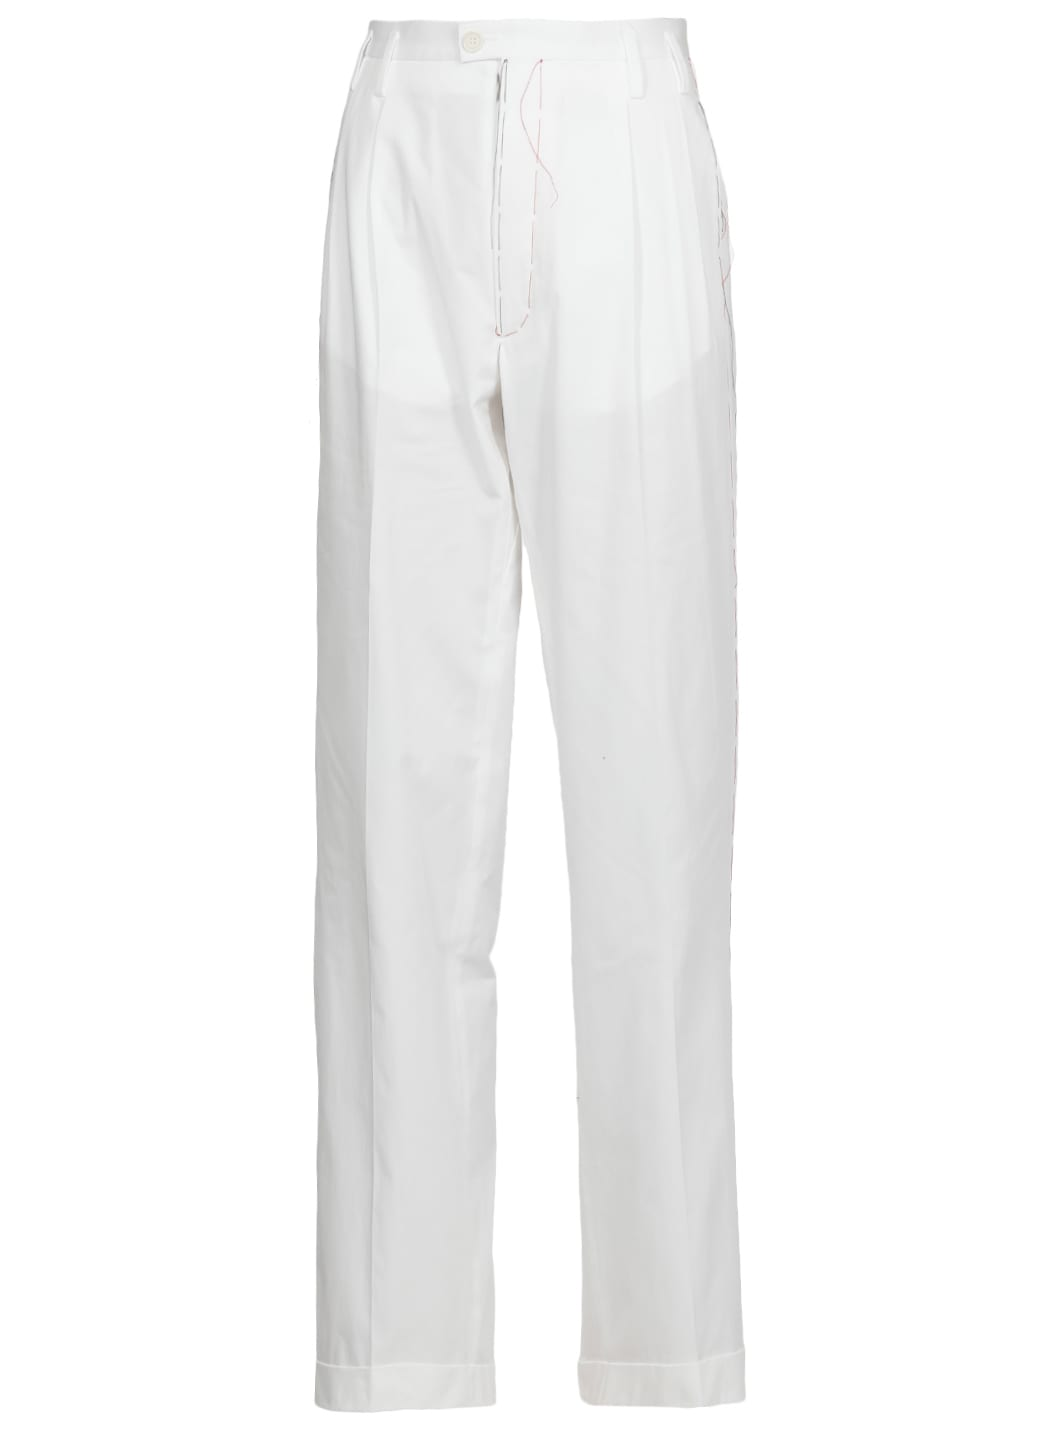 MAISON MARGIELA COTTON PANTS WITH VISIBLE STITCHINGS